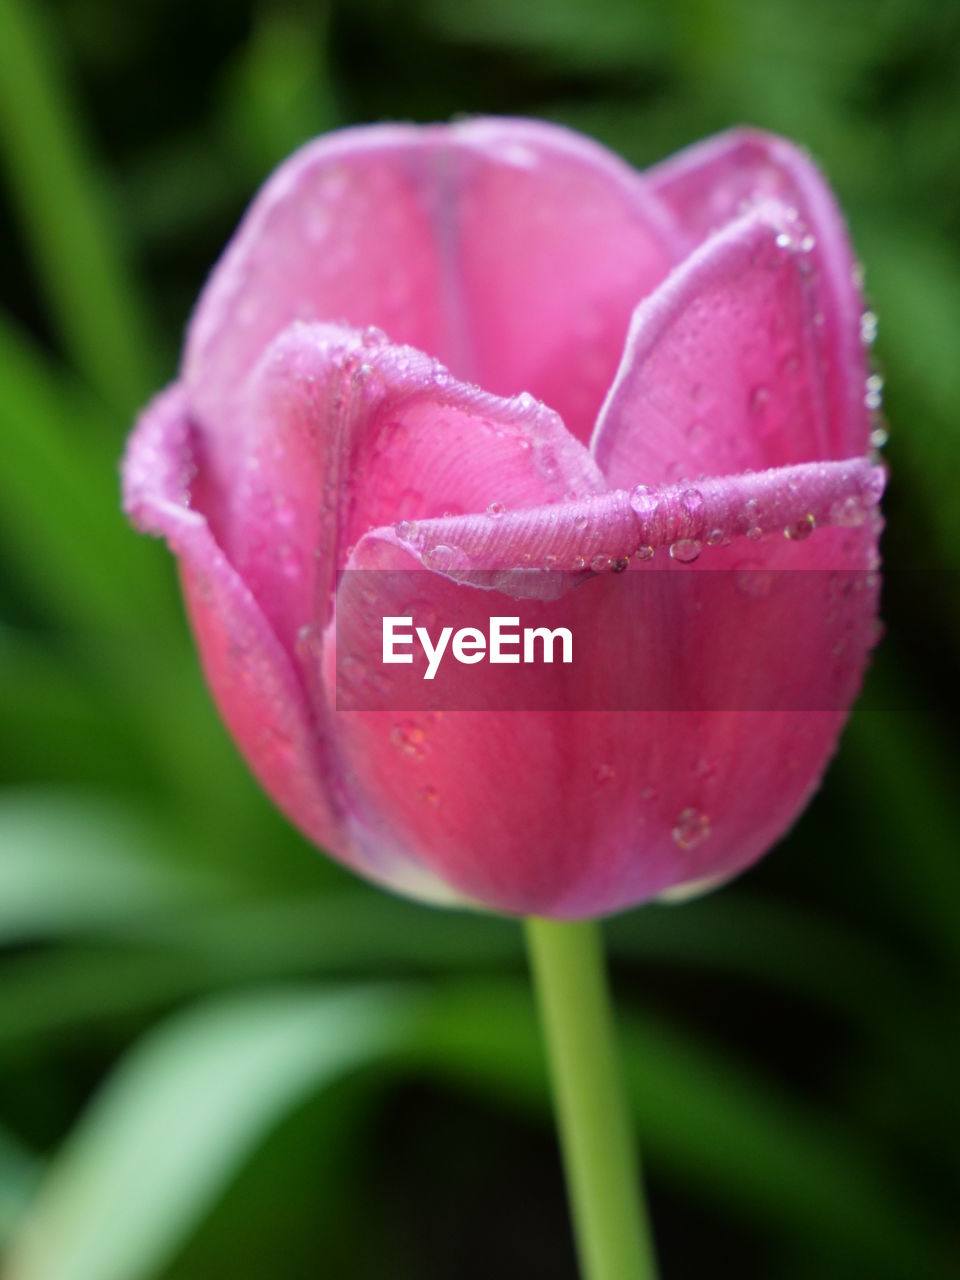 flower, vulnerability, flowering plant, plant, beauty in nature, fragility, freshness, growth, pink color, close-up, petal, inflorescence, flower head, no people, nature, day, wet, tulip, drop, outdoors, softness, dew